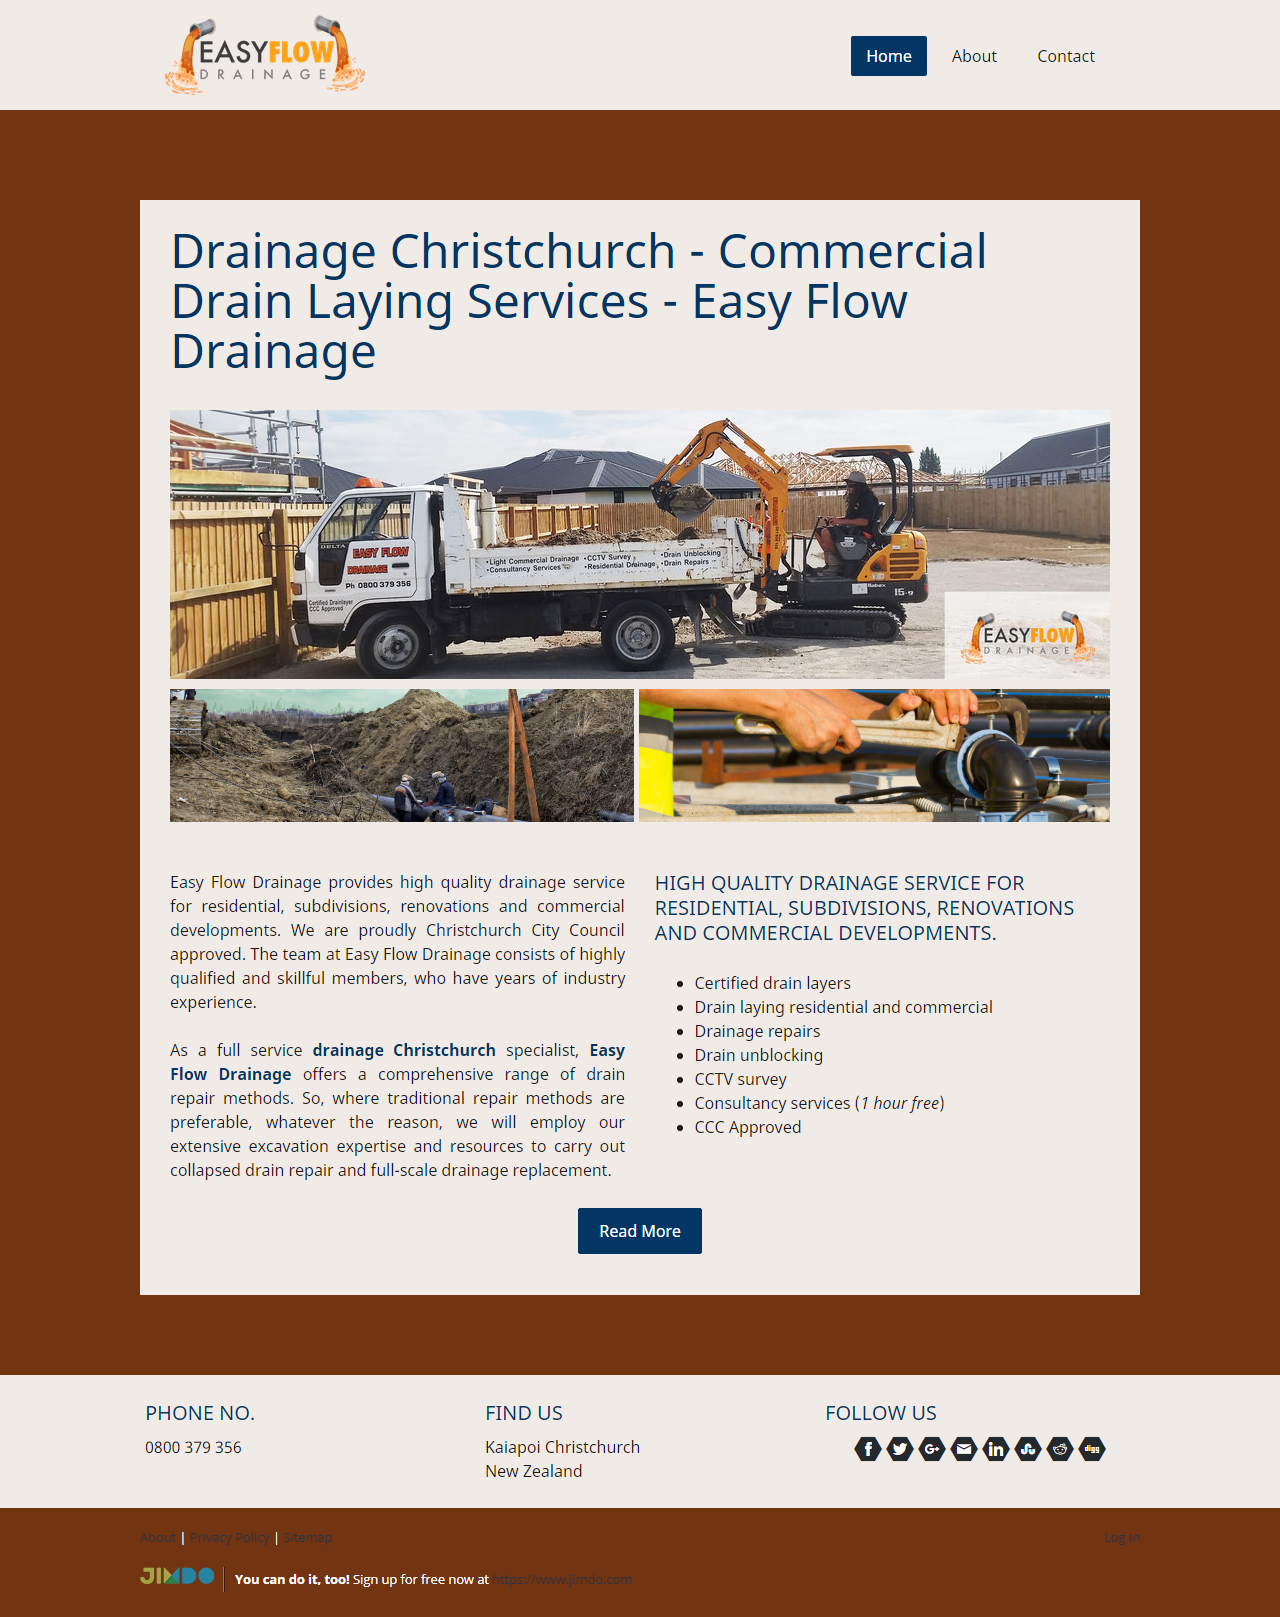 Are You Looking For High Quality Drainage Services Based In Nz We Offer All Services For Residential Subdivisions Renovat Drainage Christchurch Drain Repair